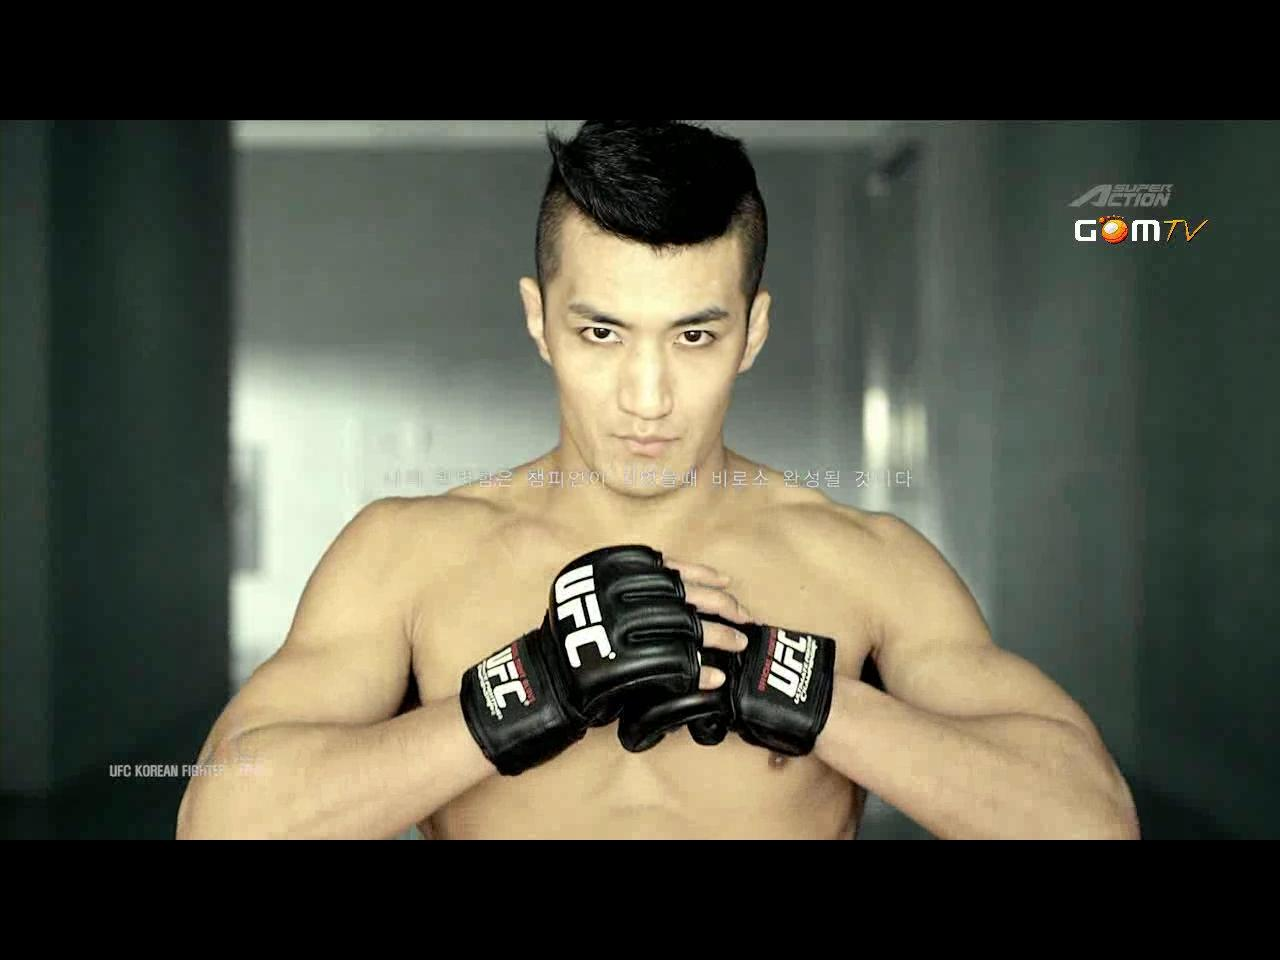 [UFC KOREAN FIGHTER] �̽��� ����Ʈ ����ȣ